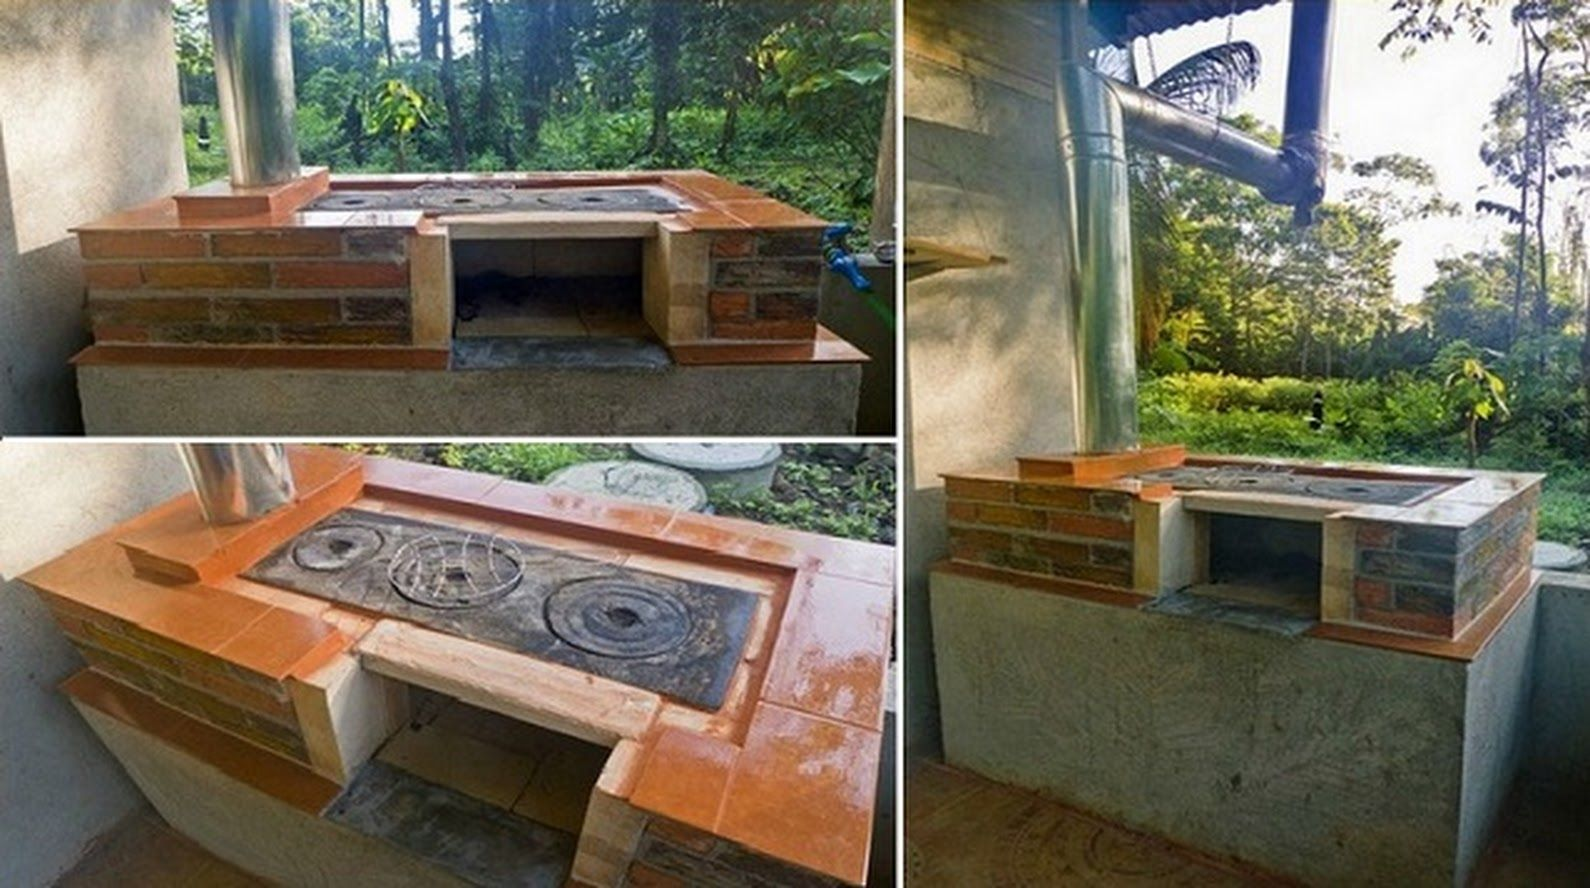 How to build your own diy outdoor wood stoveoven cooker grill and